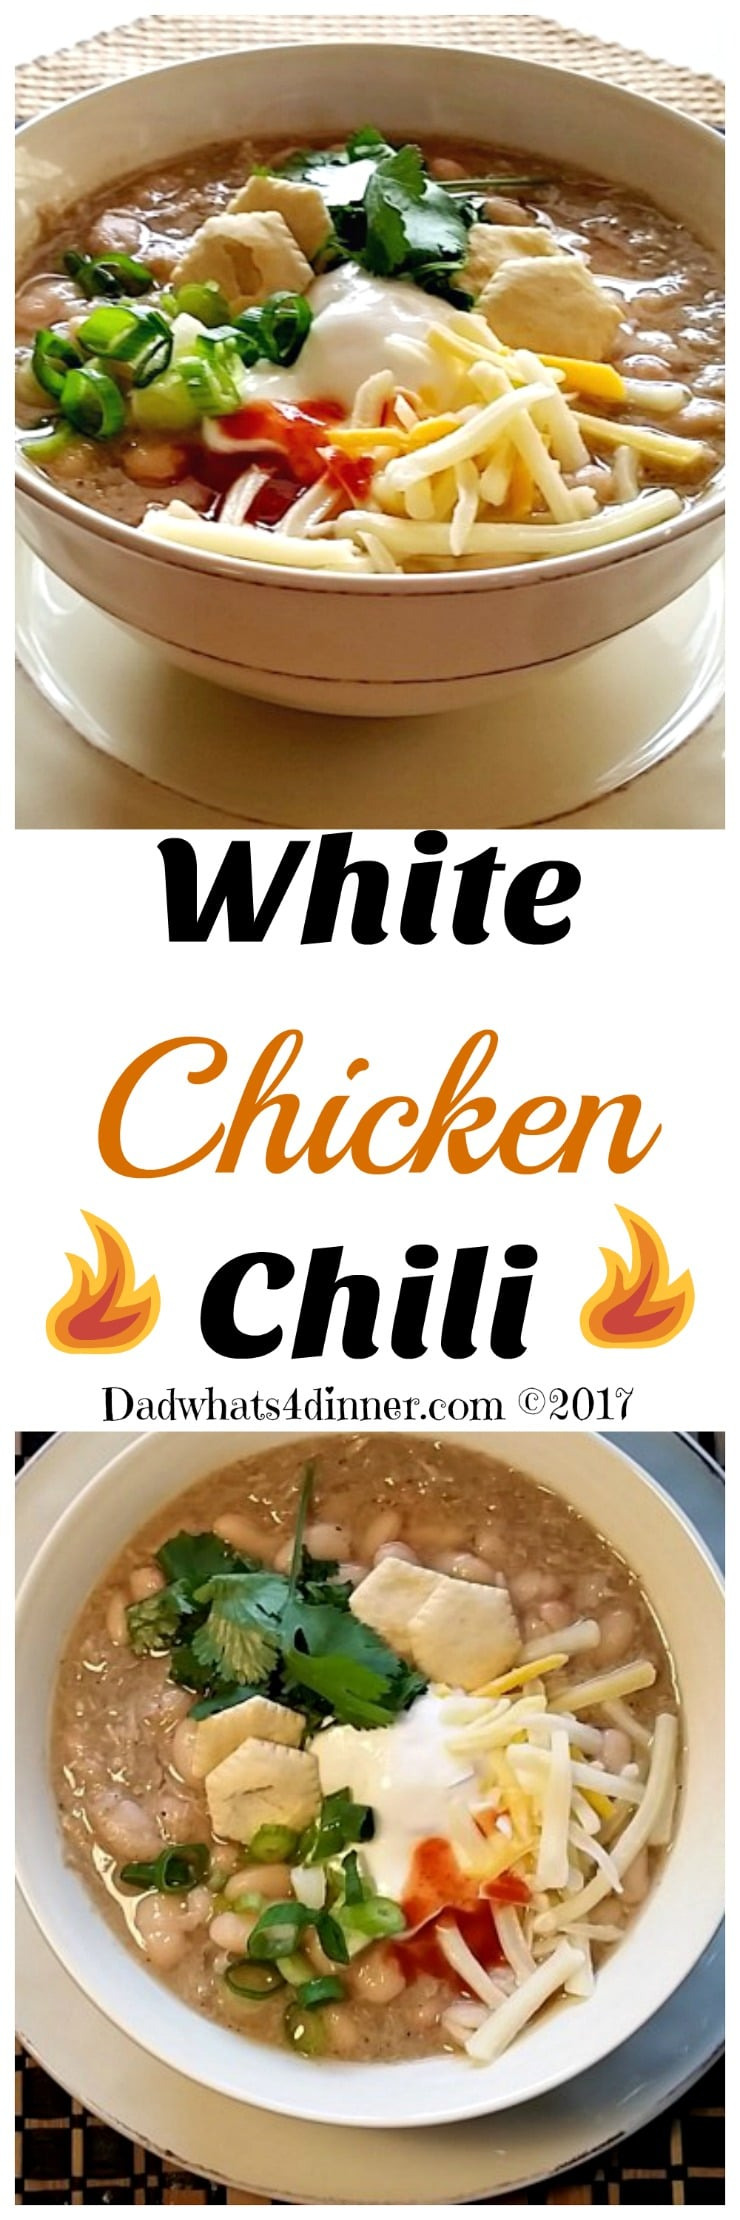 Nothing better on a cold day than a warm bowl of White Chicken Chili made with chicken, white beans, cumin, mild chilies and other spices.